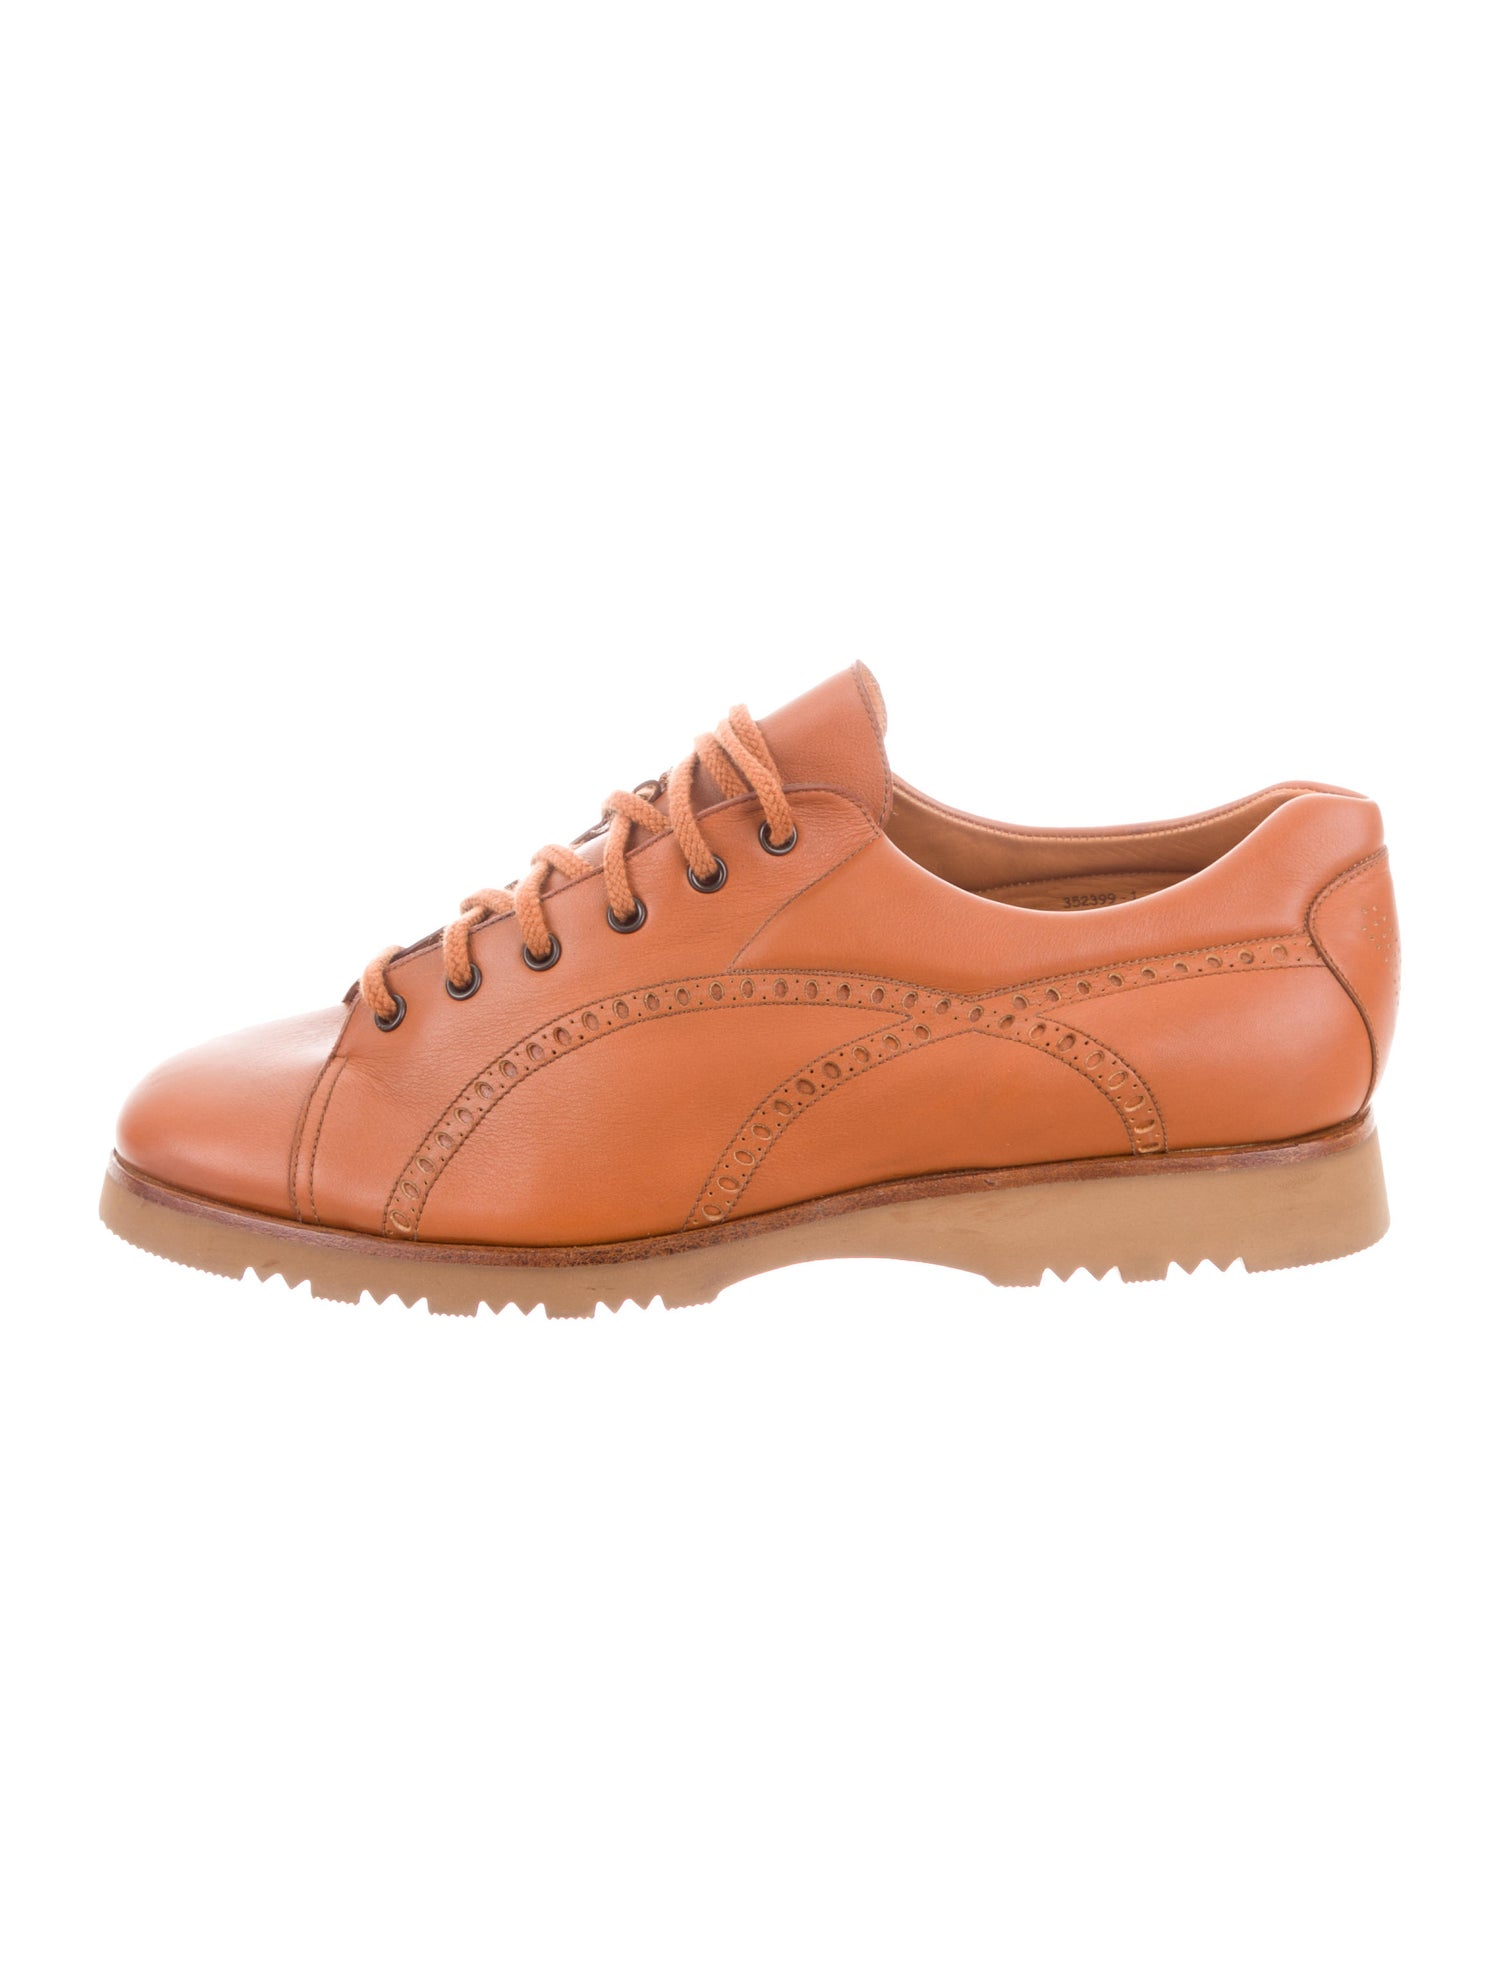 Leather Round-Toe Sneakers - J.M. Weston $97.50